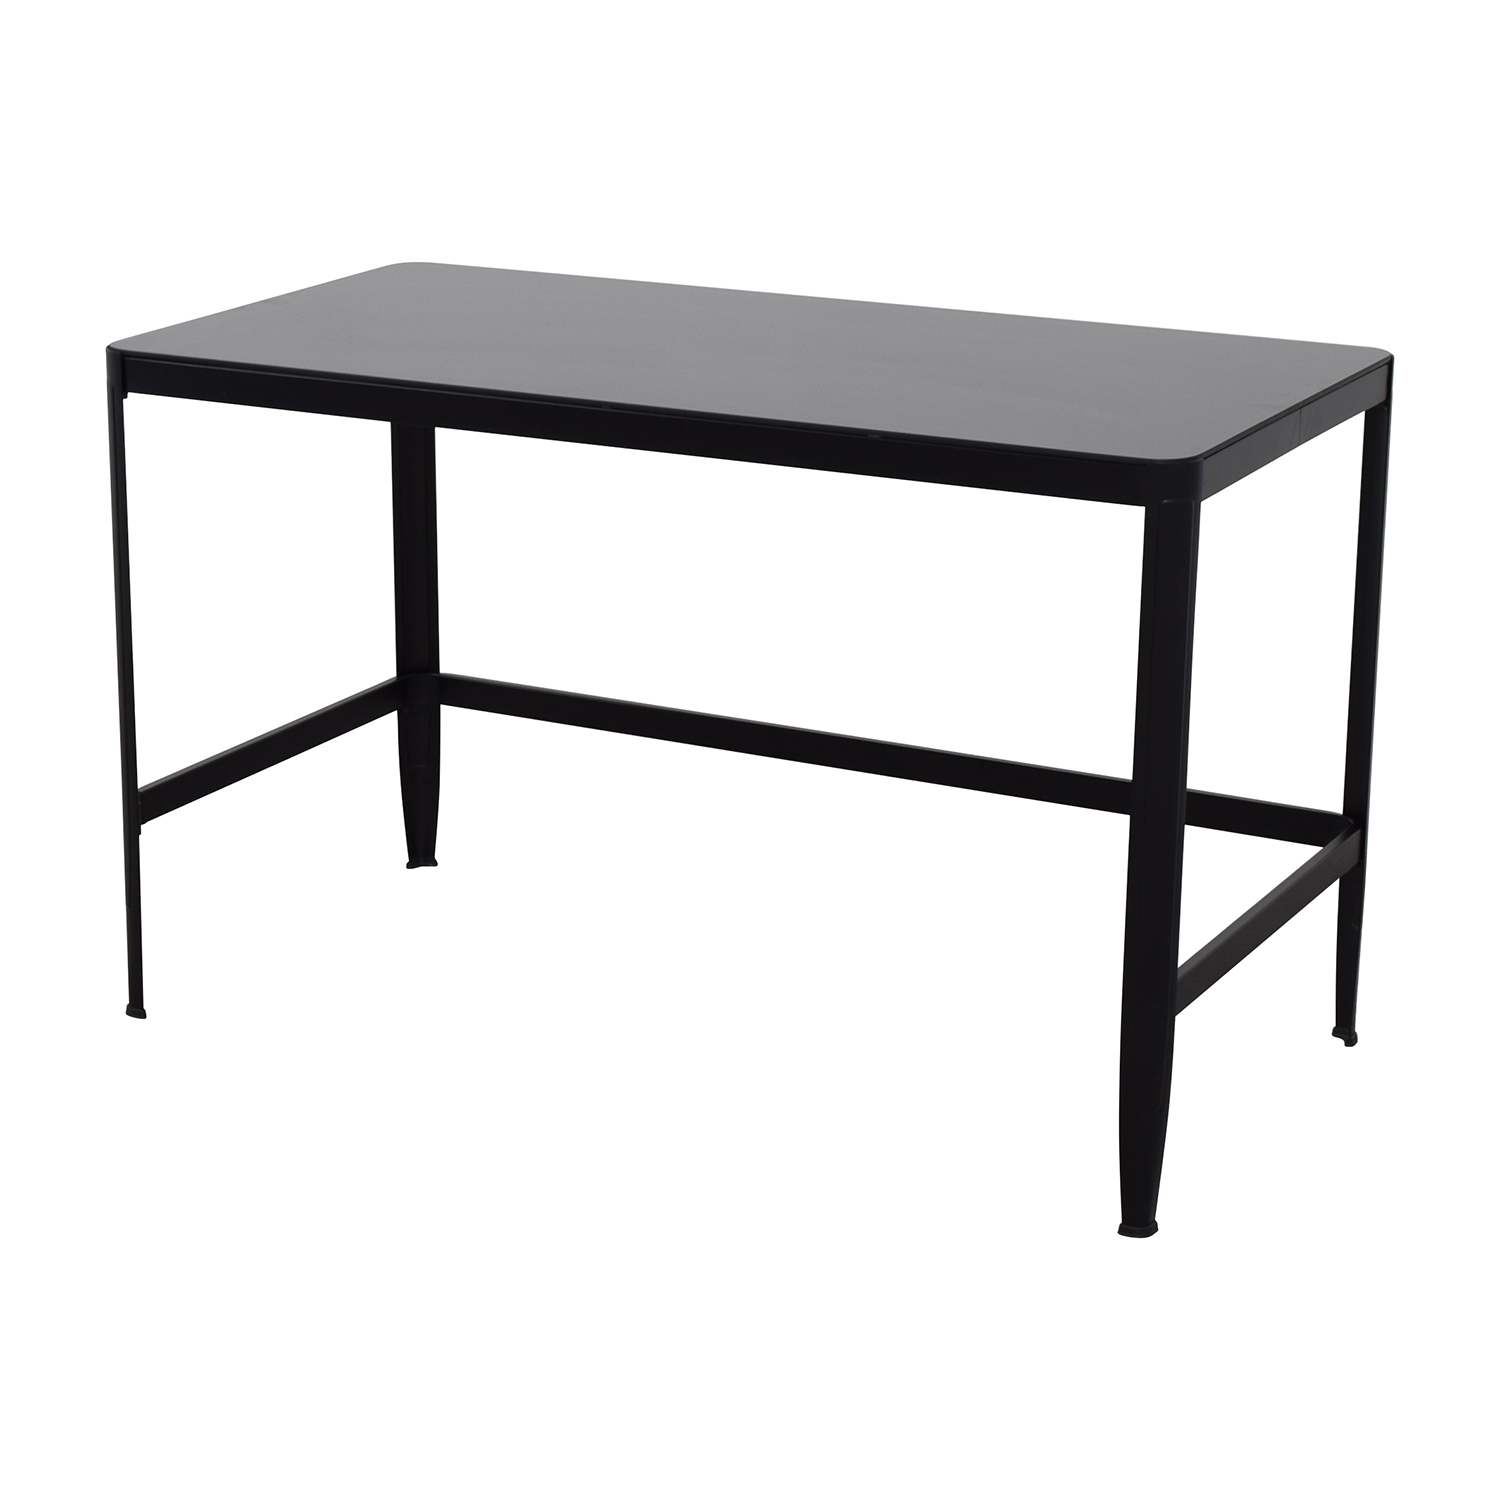 ... Shop Modern Black Metal Table With Glass Top Tables ...